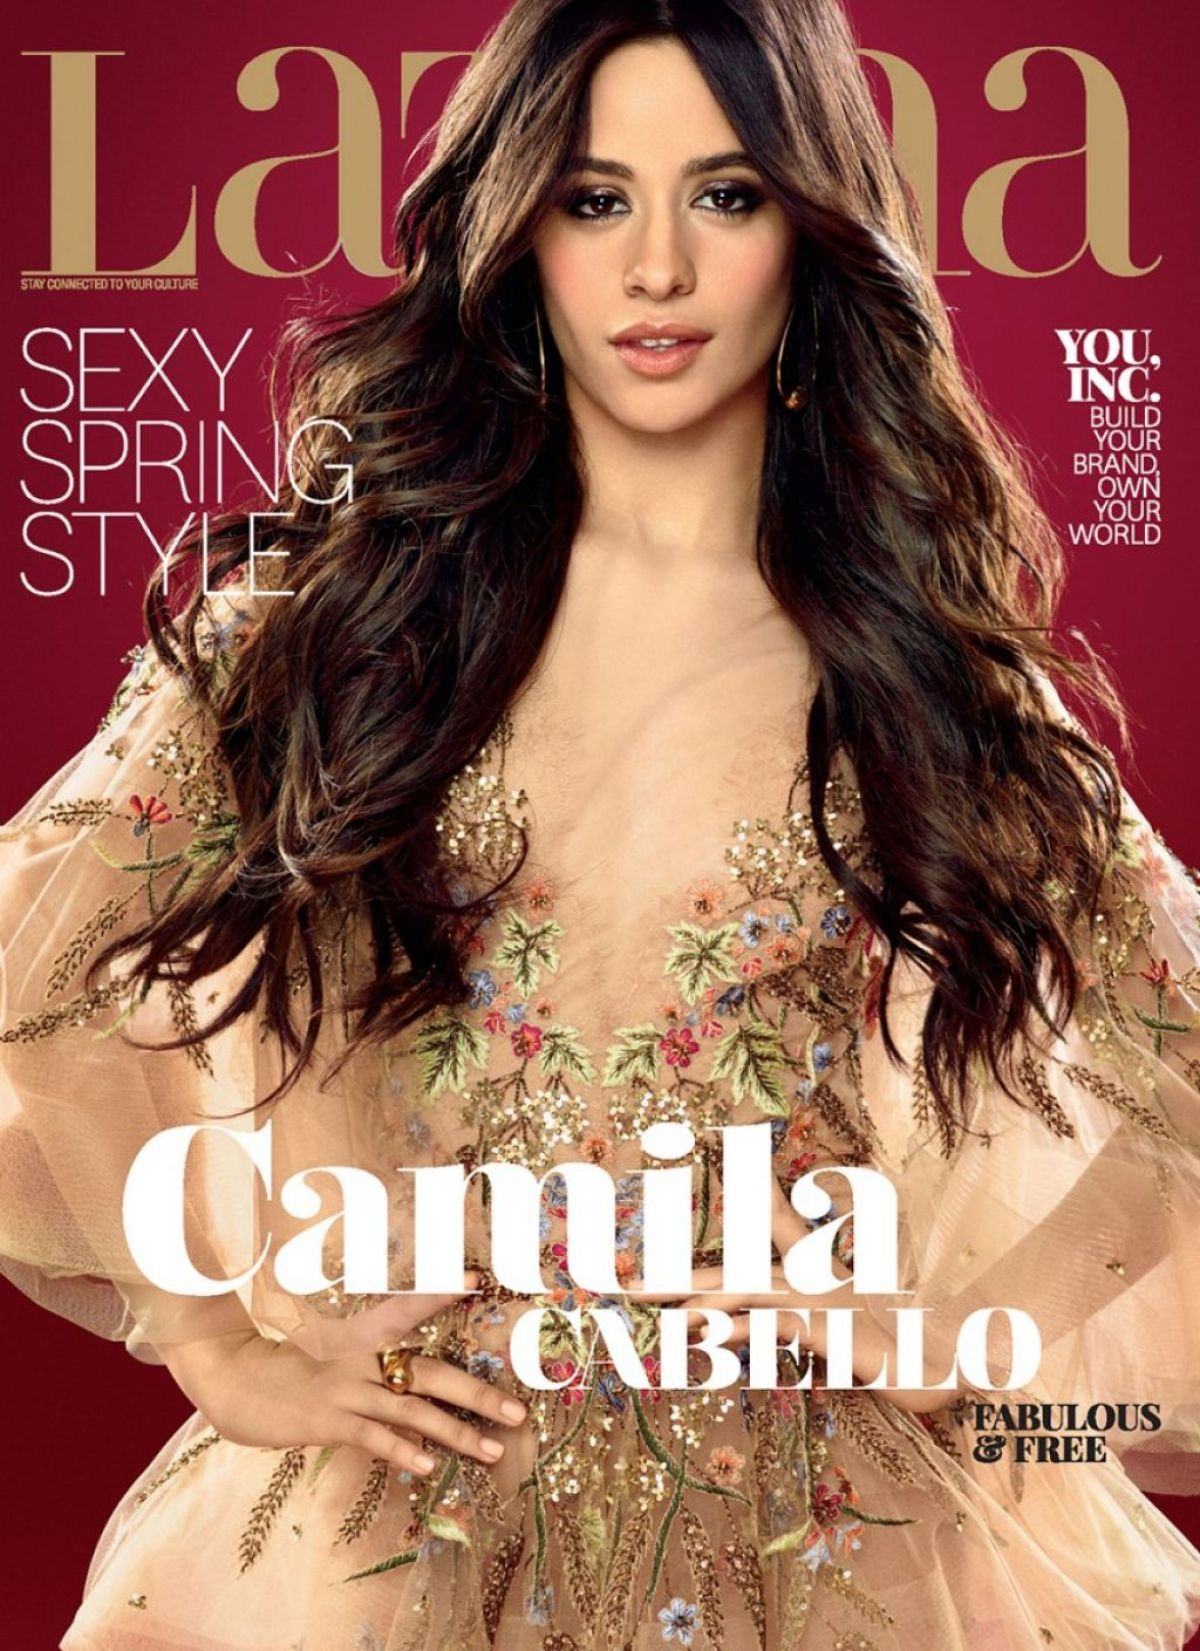 CAMILA CABELLO in Latina Magazine, April 2017